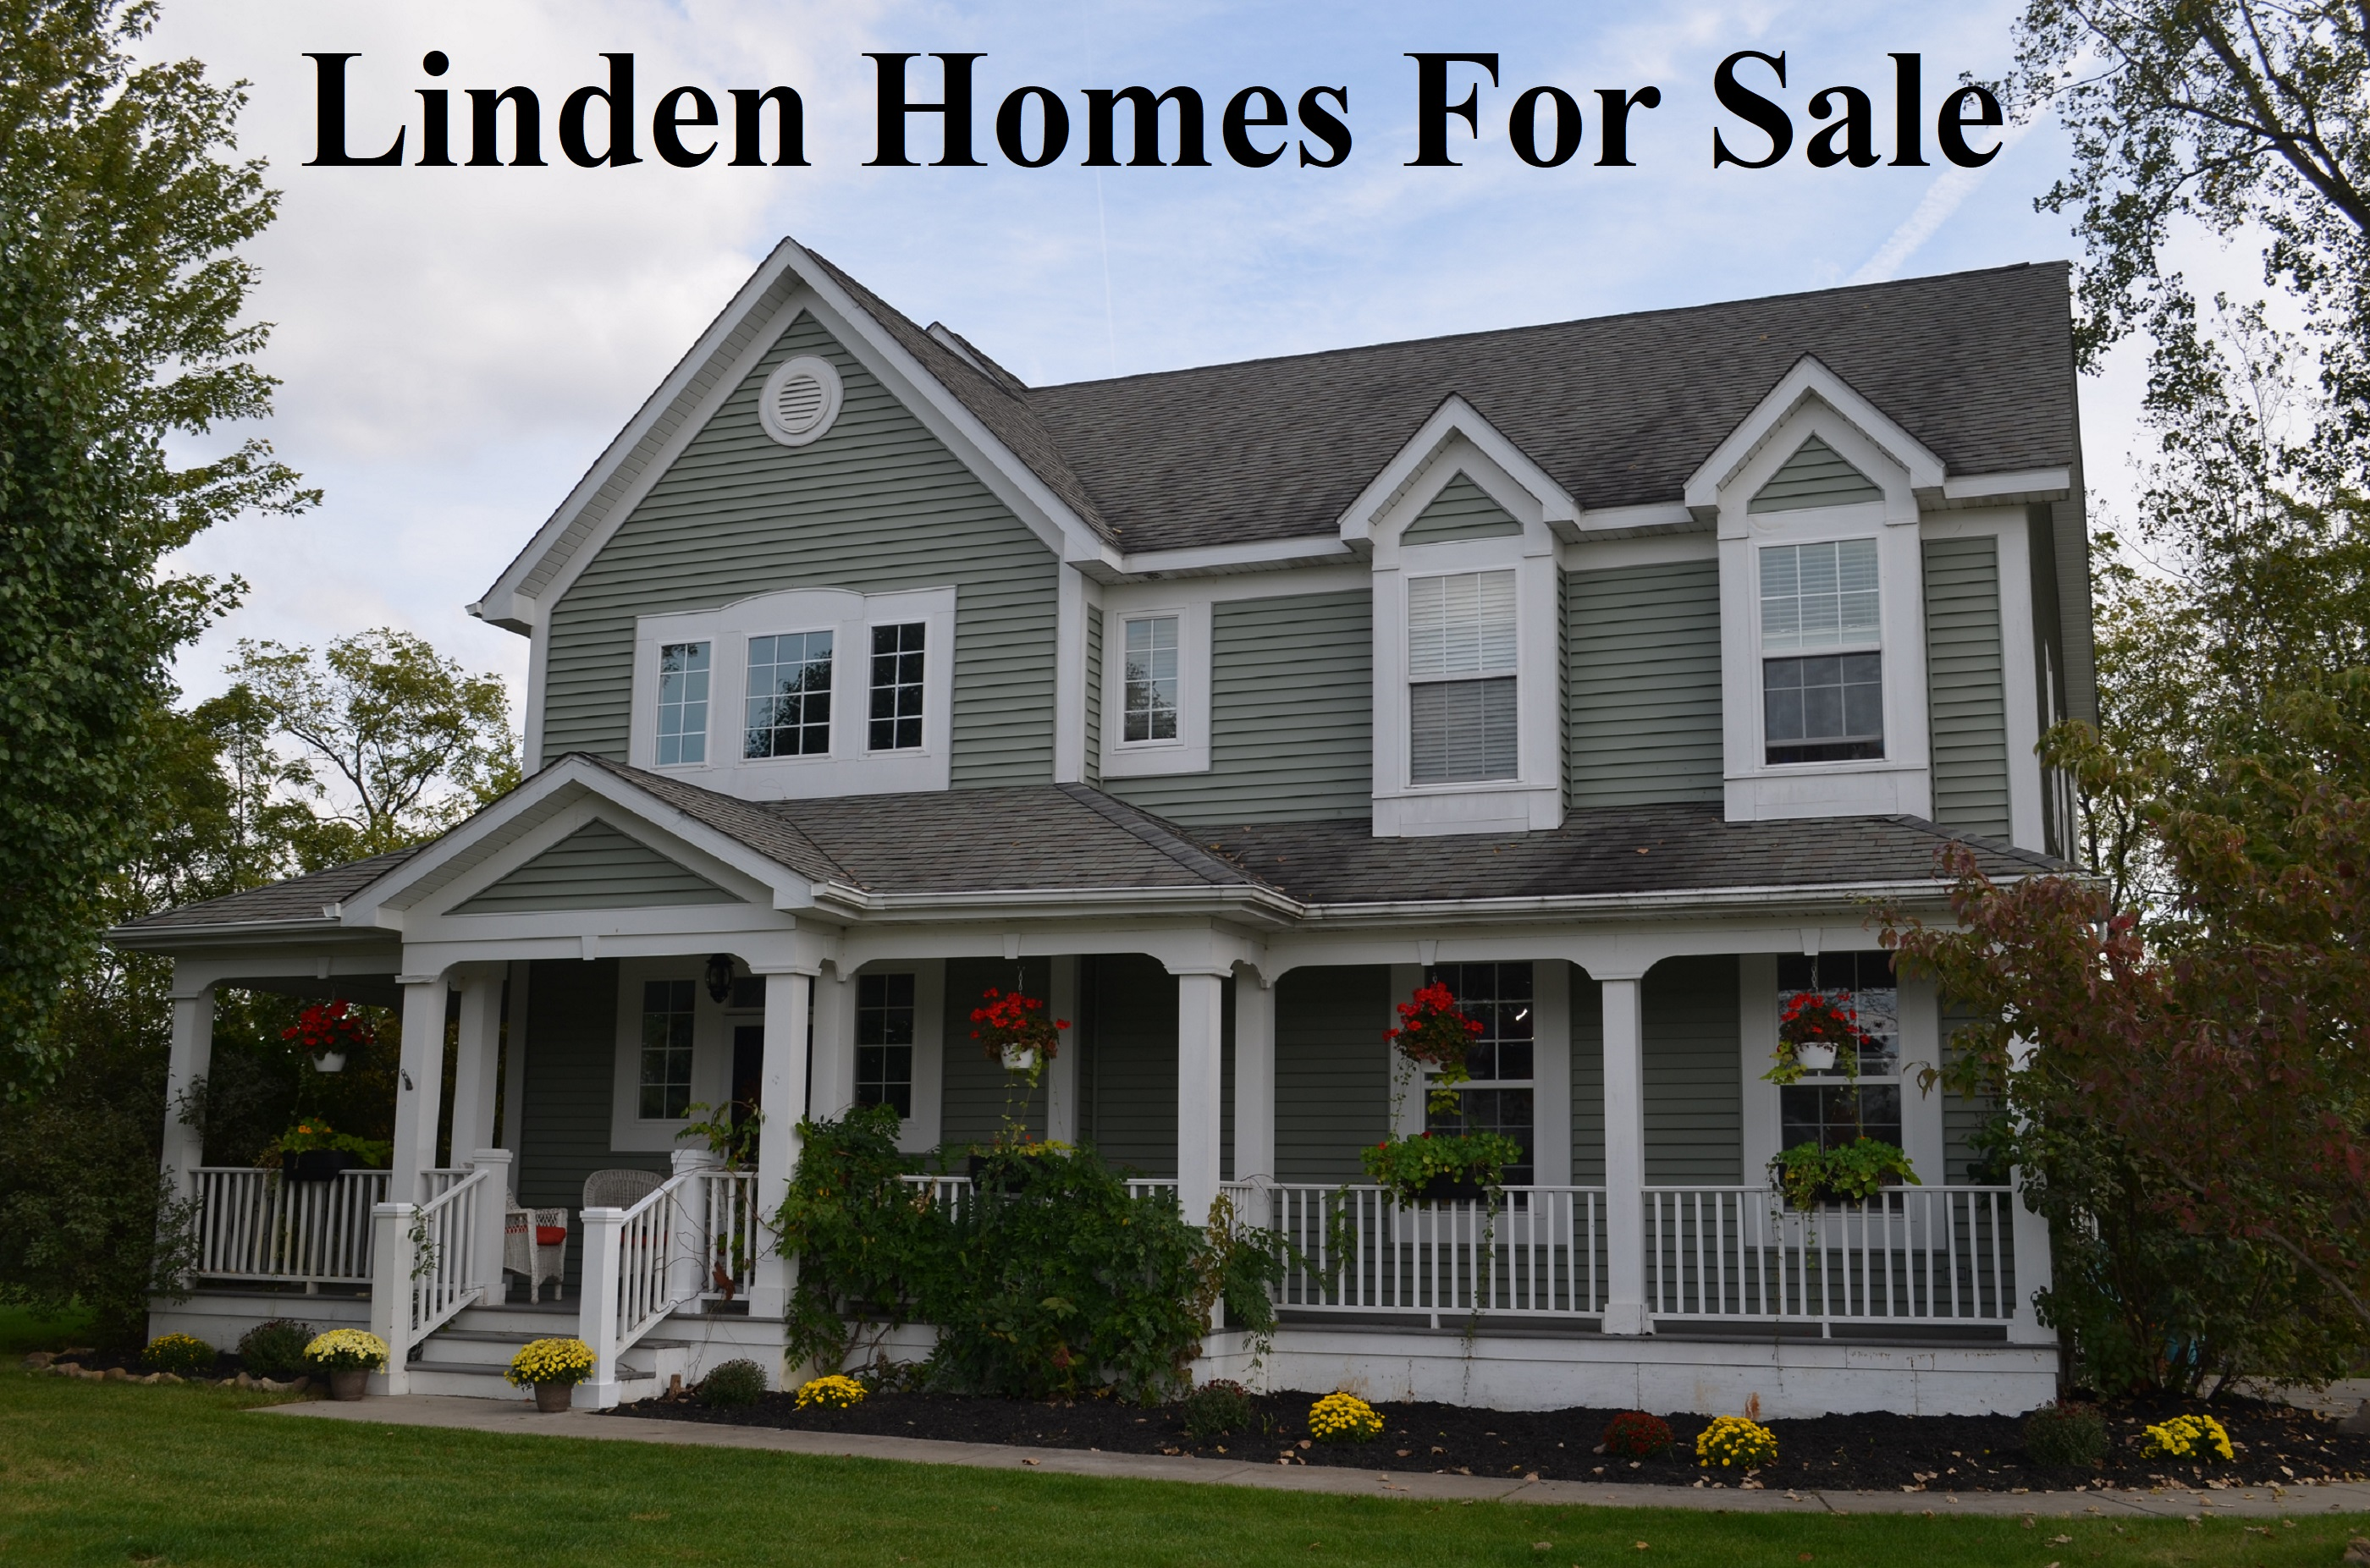 Linden Homes For Sale